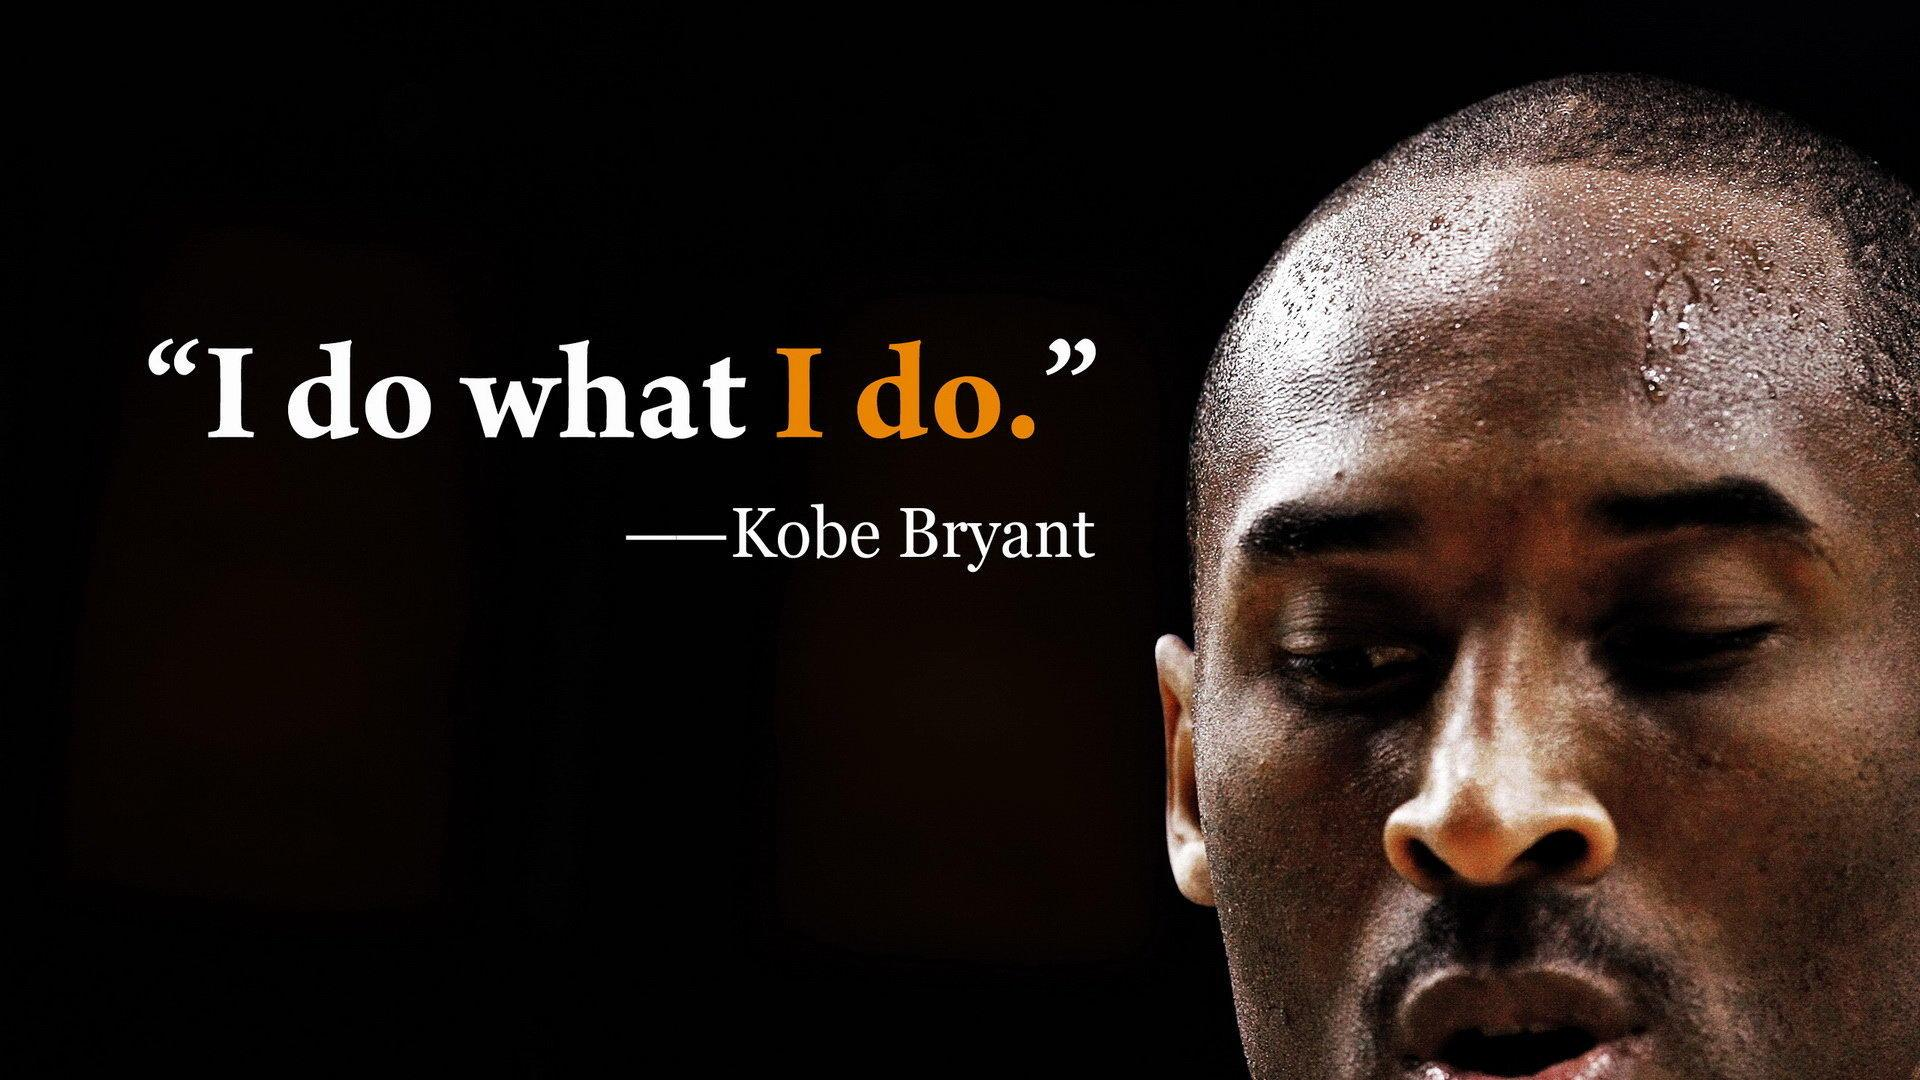 Kobe Bryant Wallpapers High Resolution And Quality Download